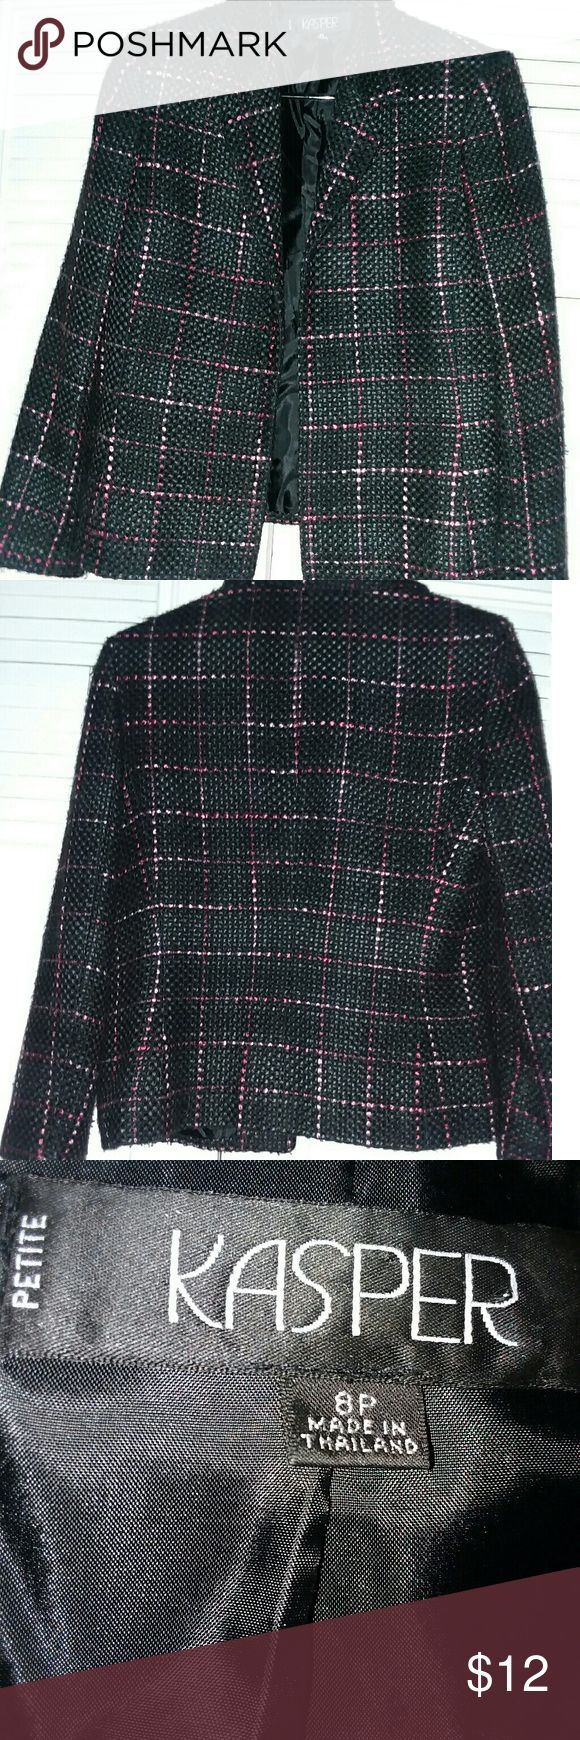 Women's Tweed Jacket by KASPER Women's tweed jacket by KASPER. Open front with padded shoulders. Charcoal with purple and pink plaid striping. Fully lined. Silky texture - Sz 8 Petite Kasper Jackets & Coats Utility Jackets